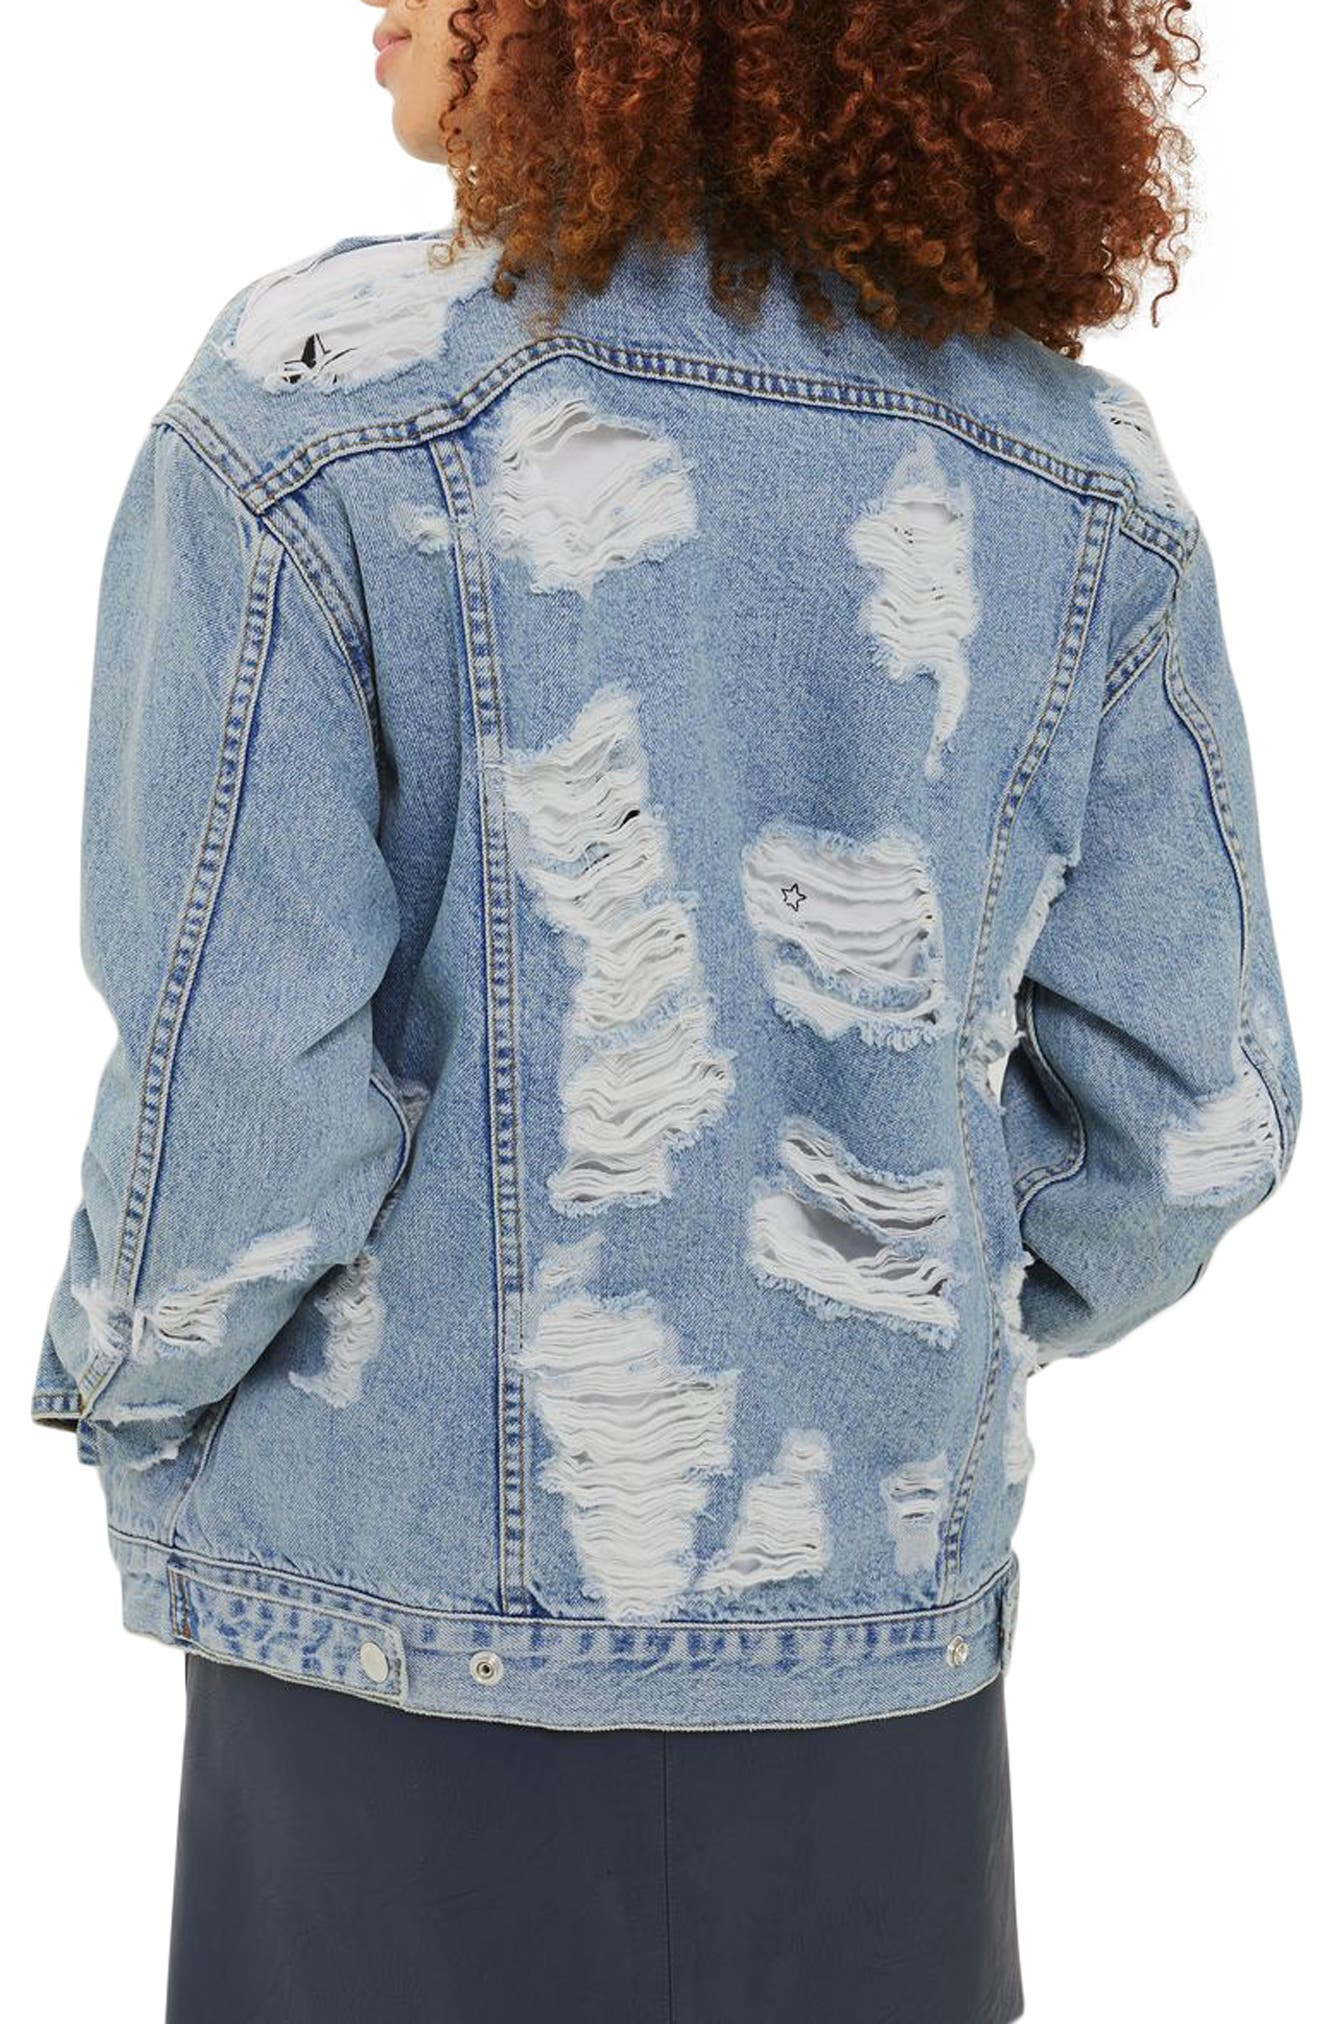 Ripped Denim Jacket,                             Alternate thumbnail 3, color,                             400